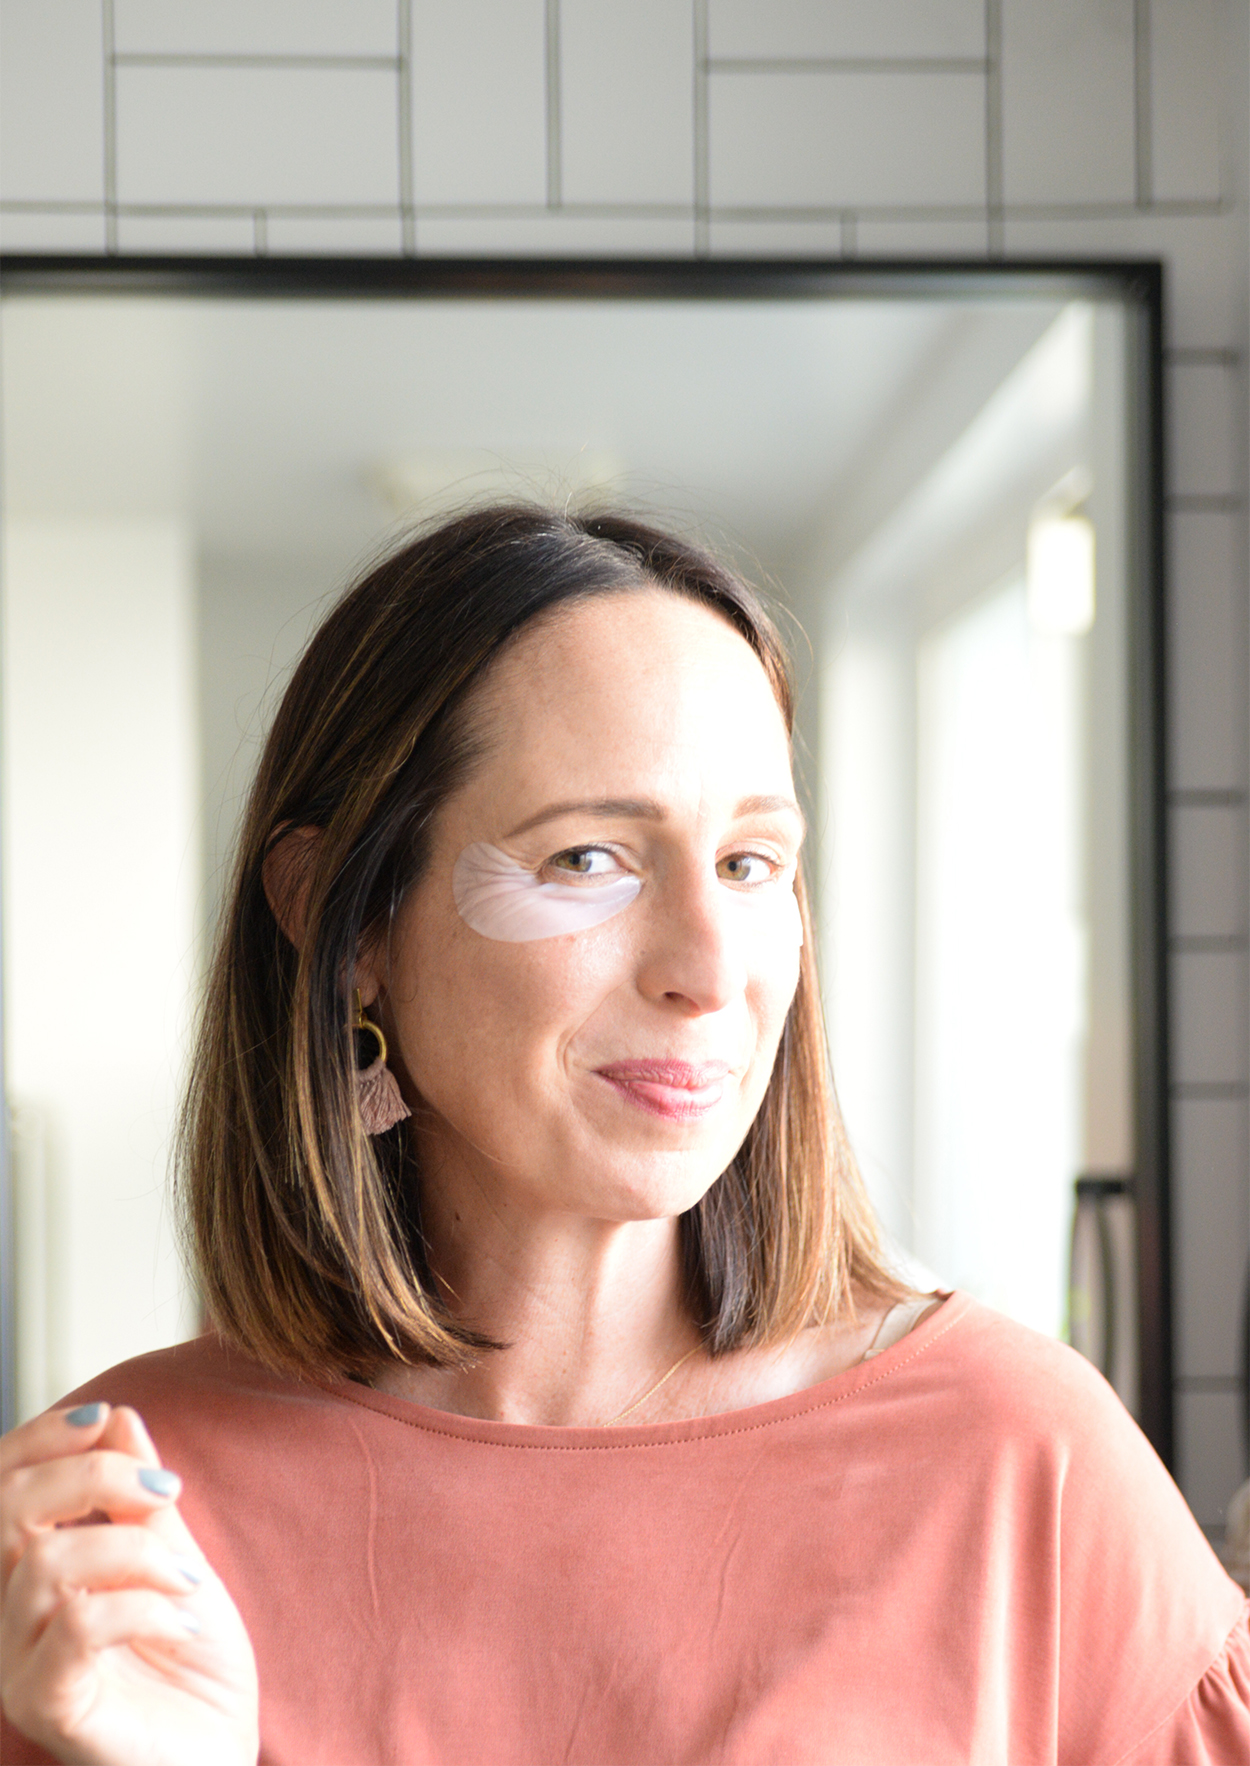 Beautycounter eye masks on brown hair woman